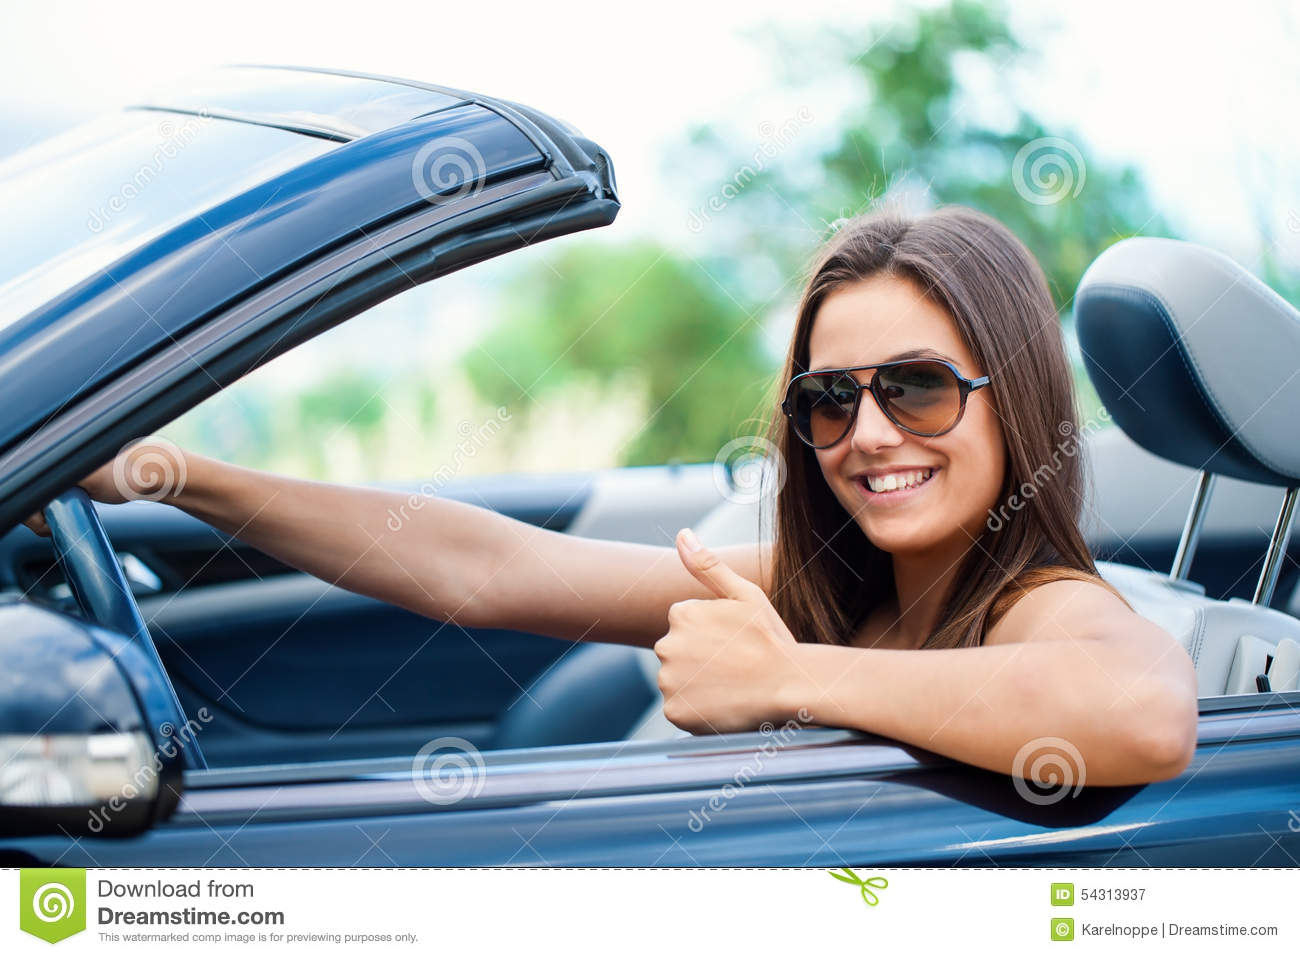 Idea Video naked girl driving convertible cars